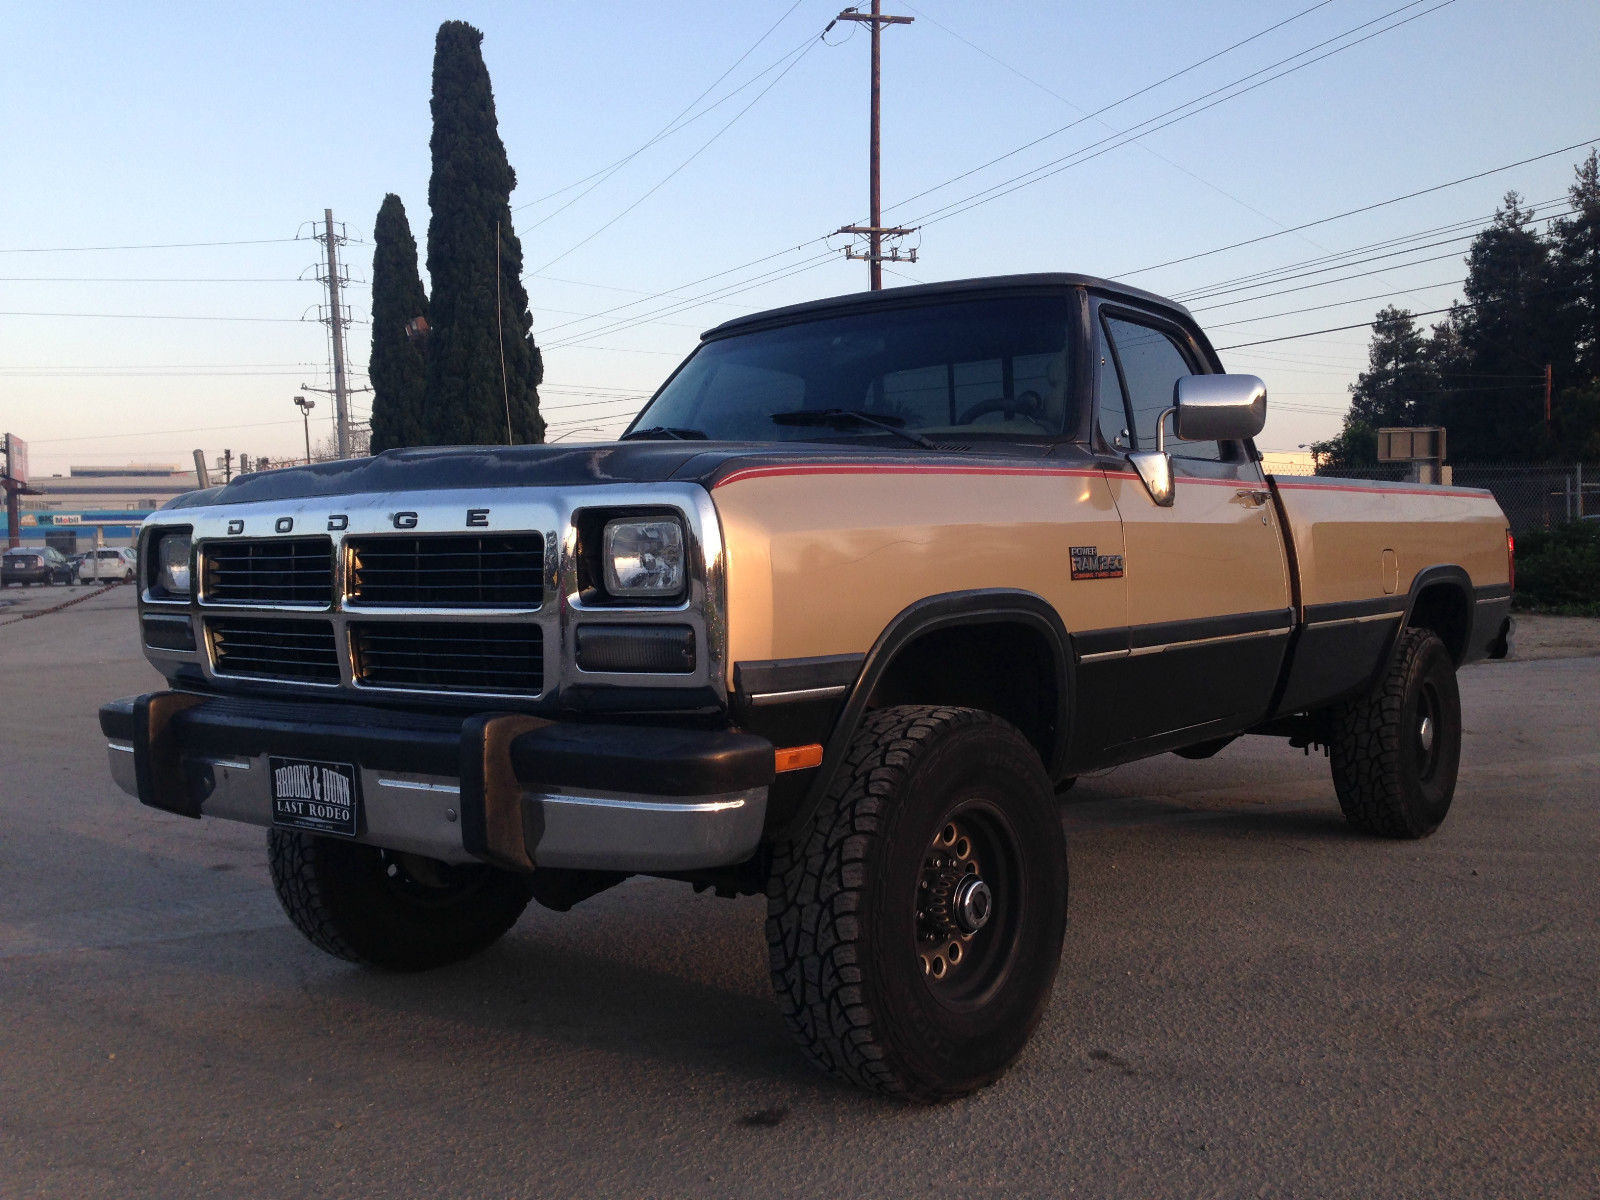 1991 Dodge Ram W250 Cummins Turbo Diesel 4x4, auto ...